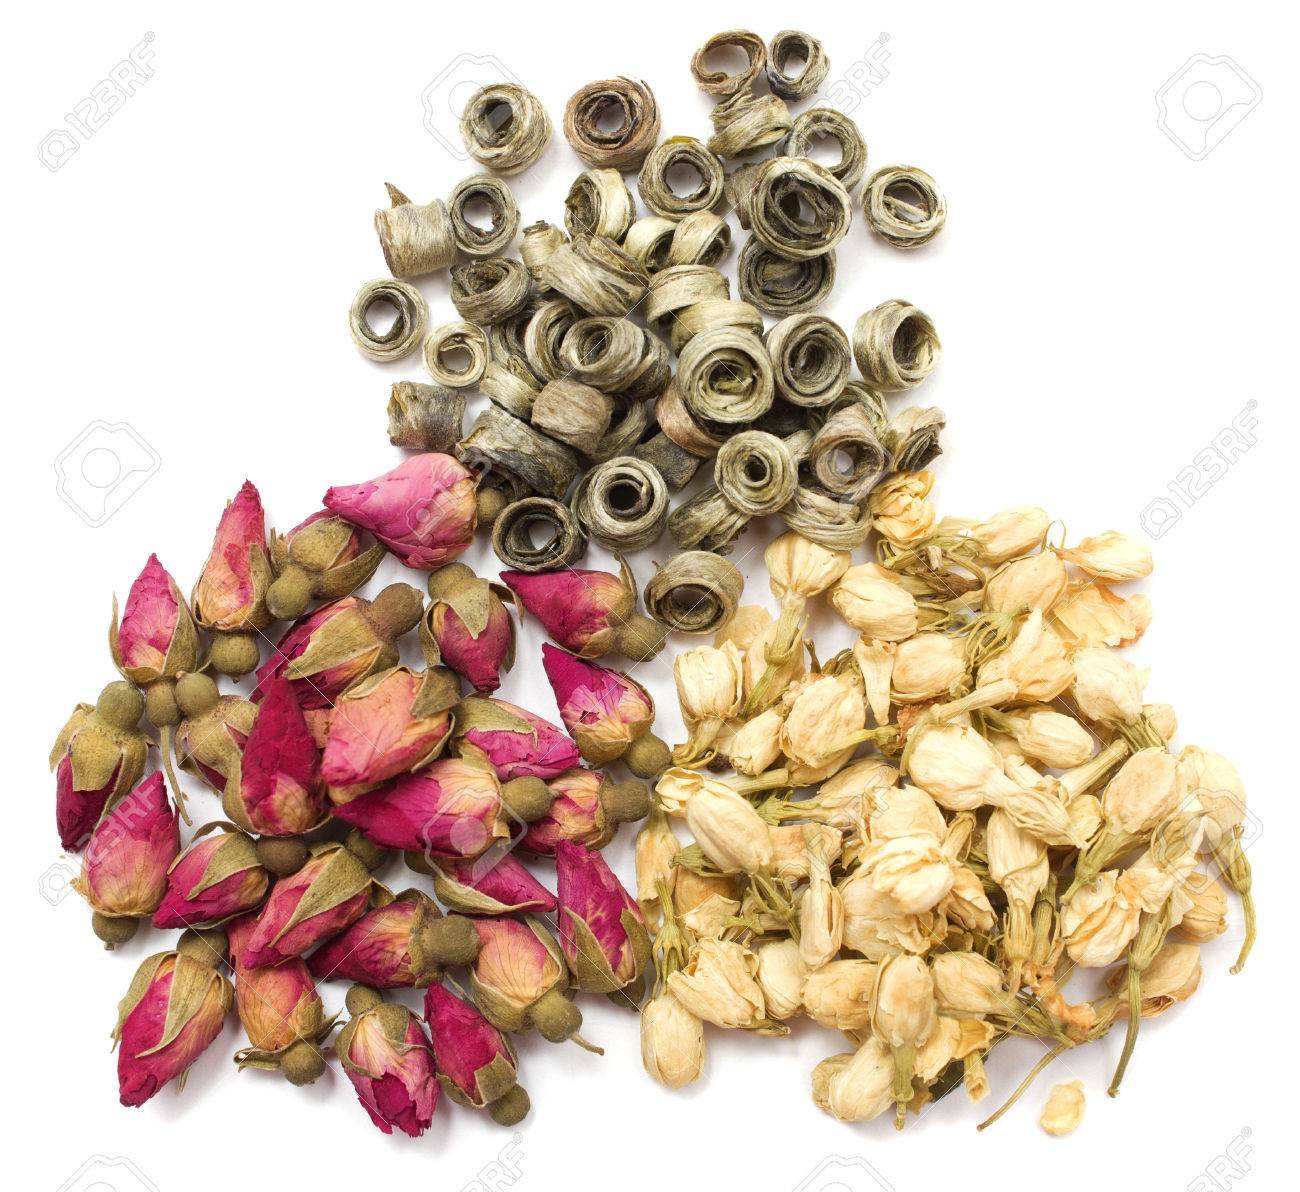 Dried flowers of jasmine and rose white tea on a white background dried flowers of jasmine and rose white tea on a white background stock photo dhlflorist Gallery